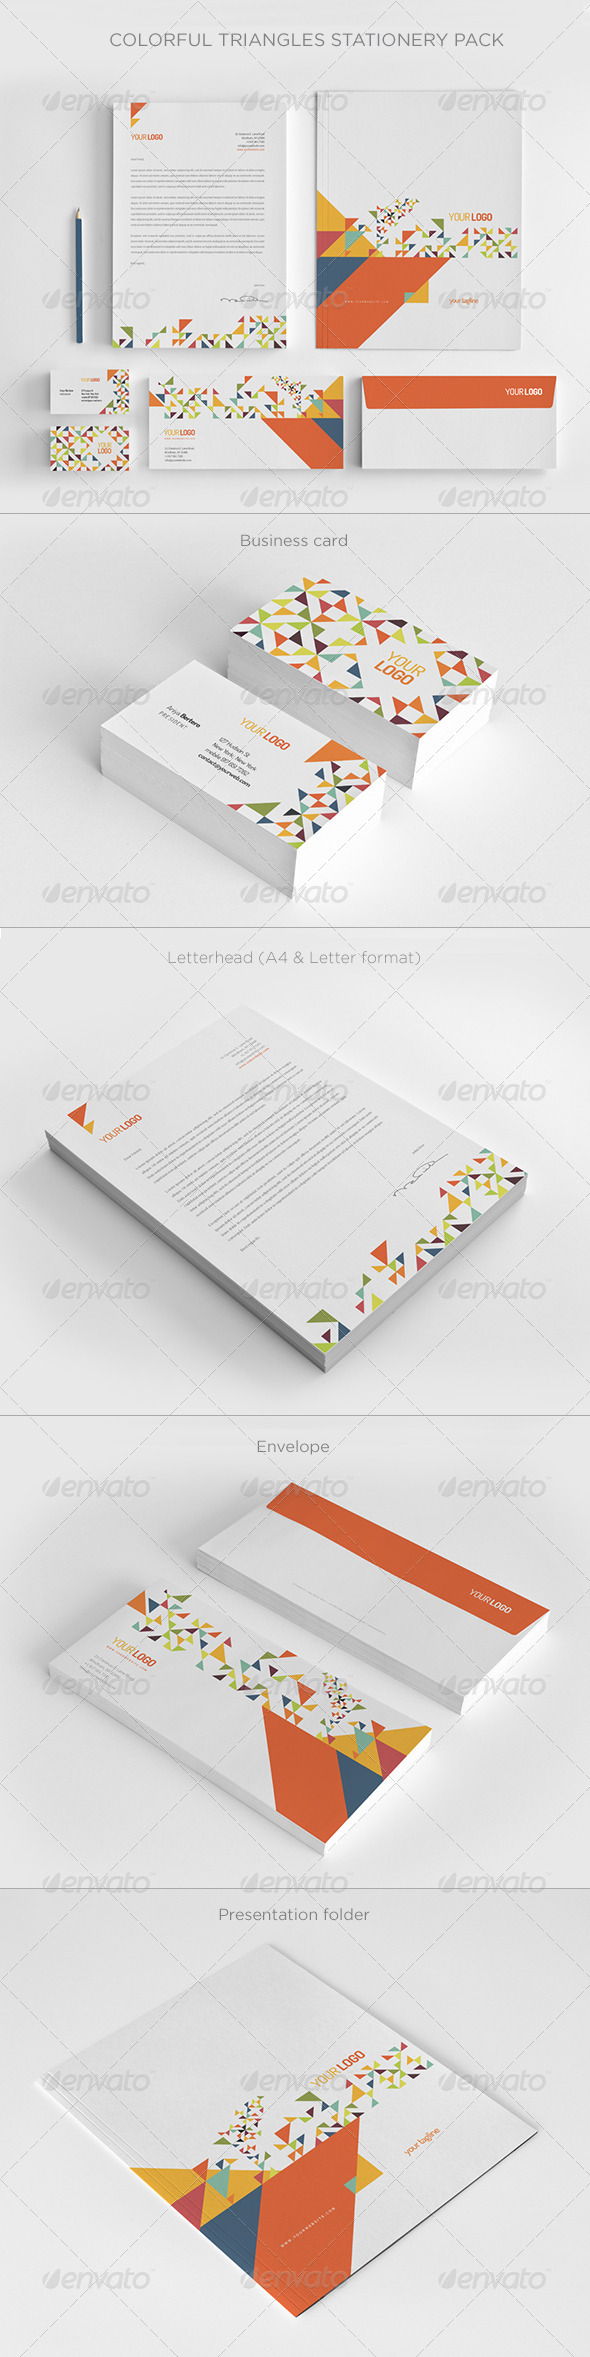 GraphicRiver Colorful Triangles Stationery Pack 7550531